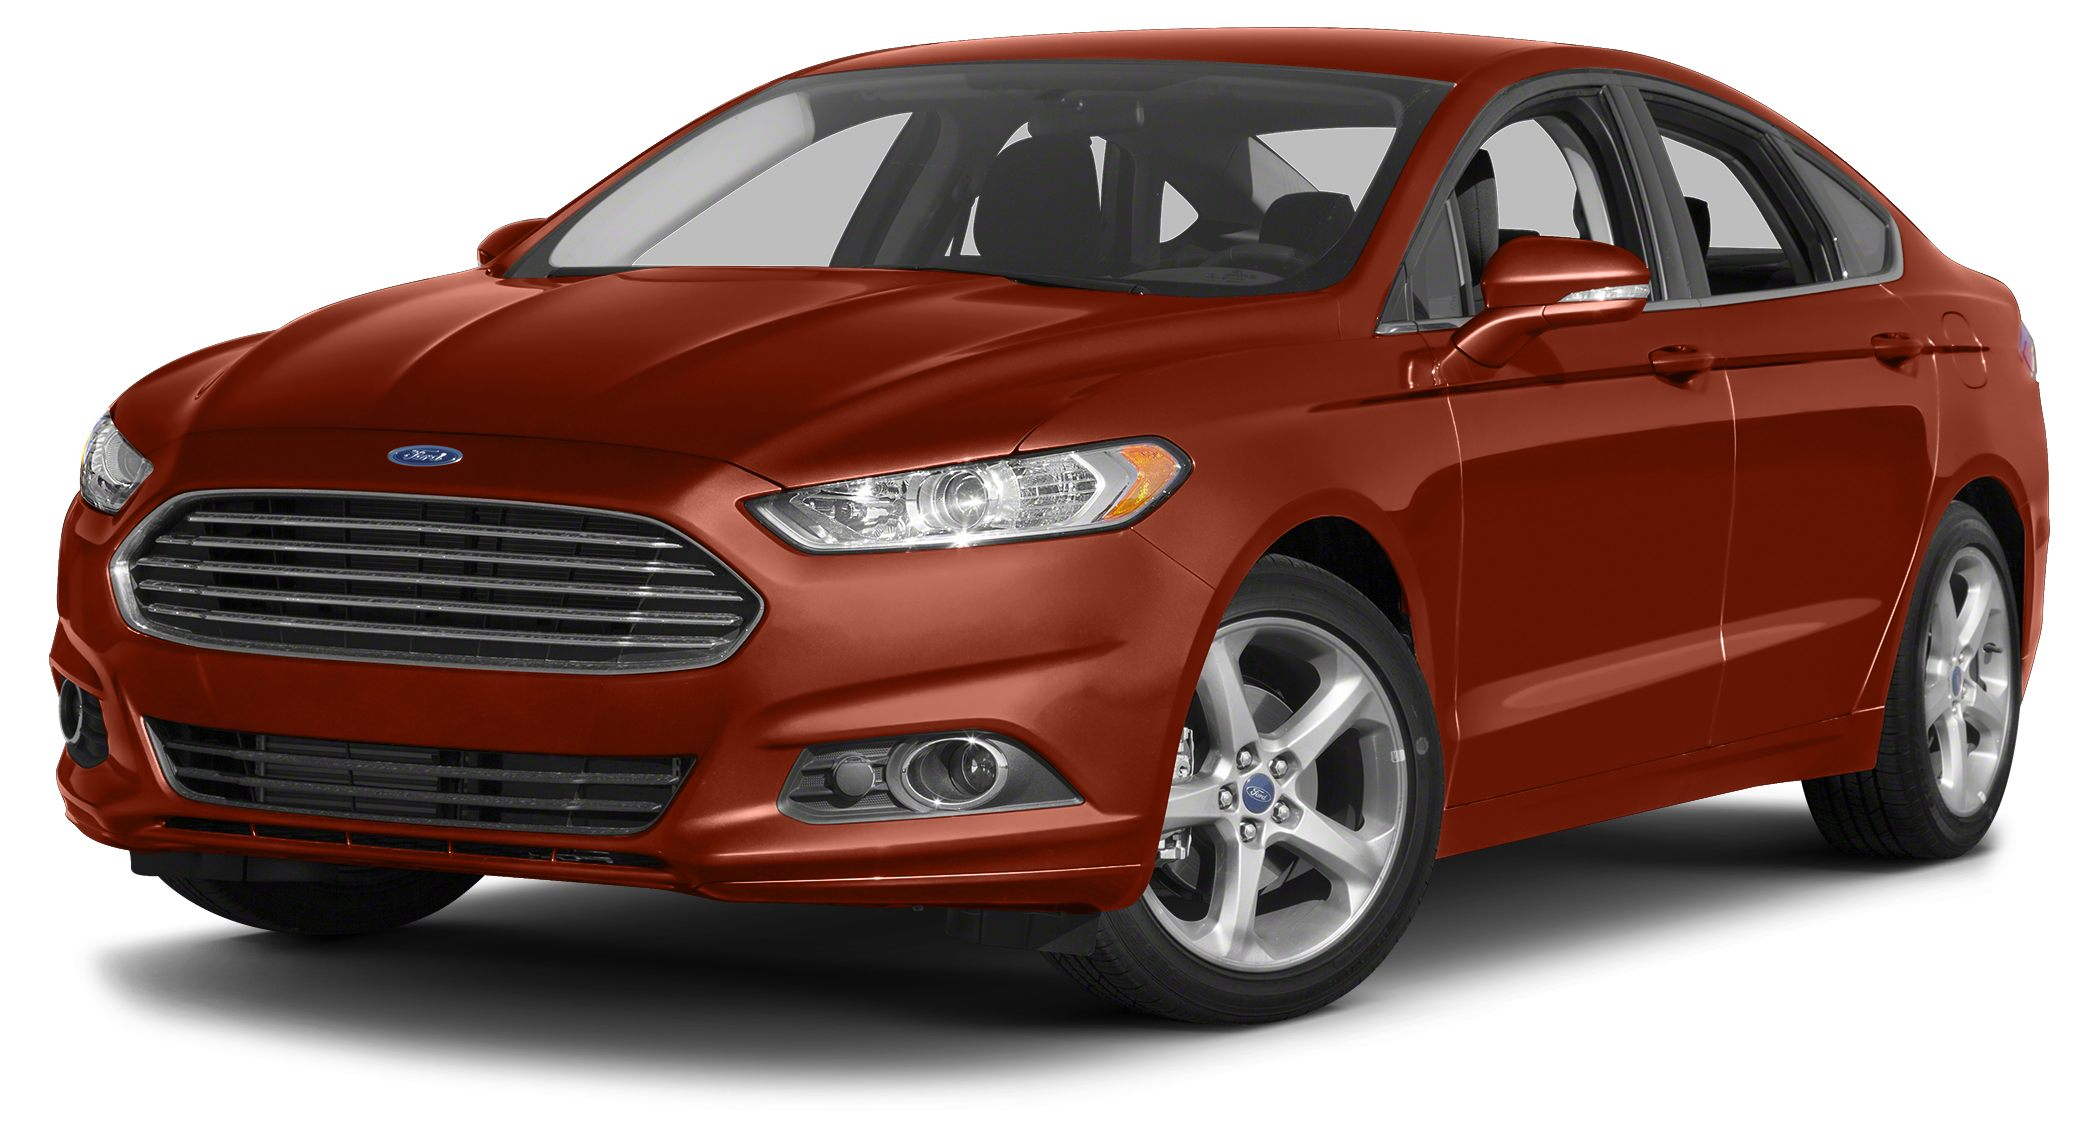 2013 Ford Fusion SE Very low miles a booming sound system and very clean interior are just a few